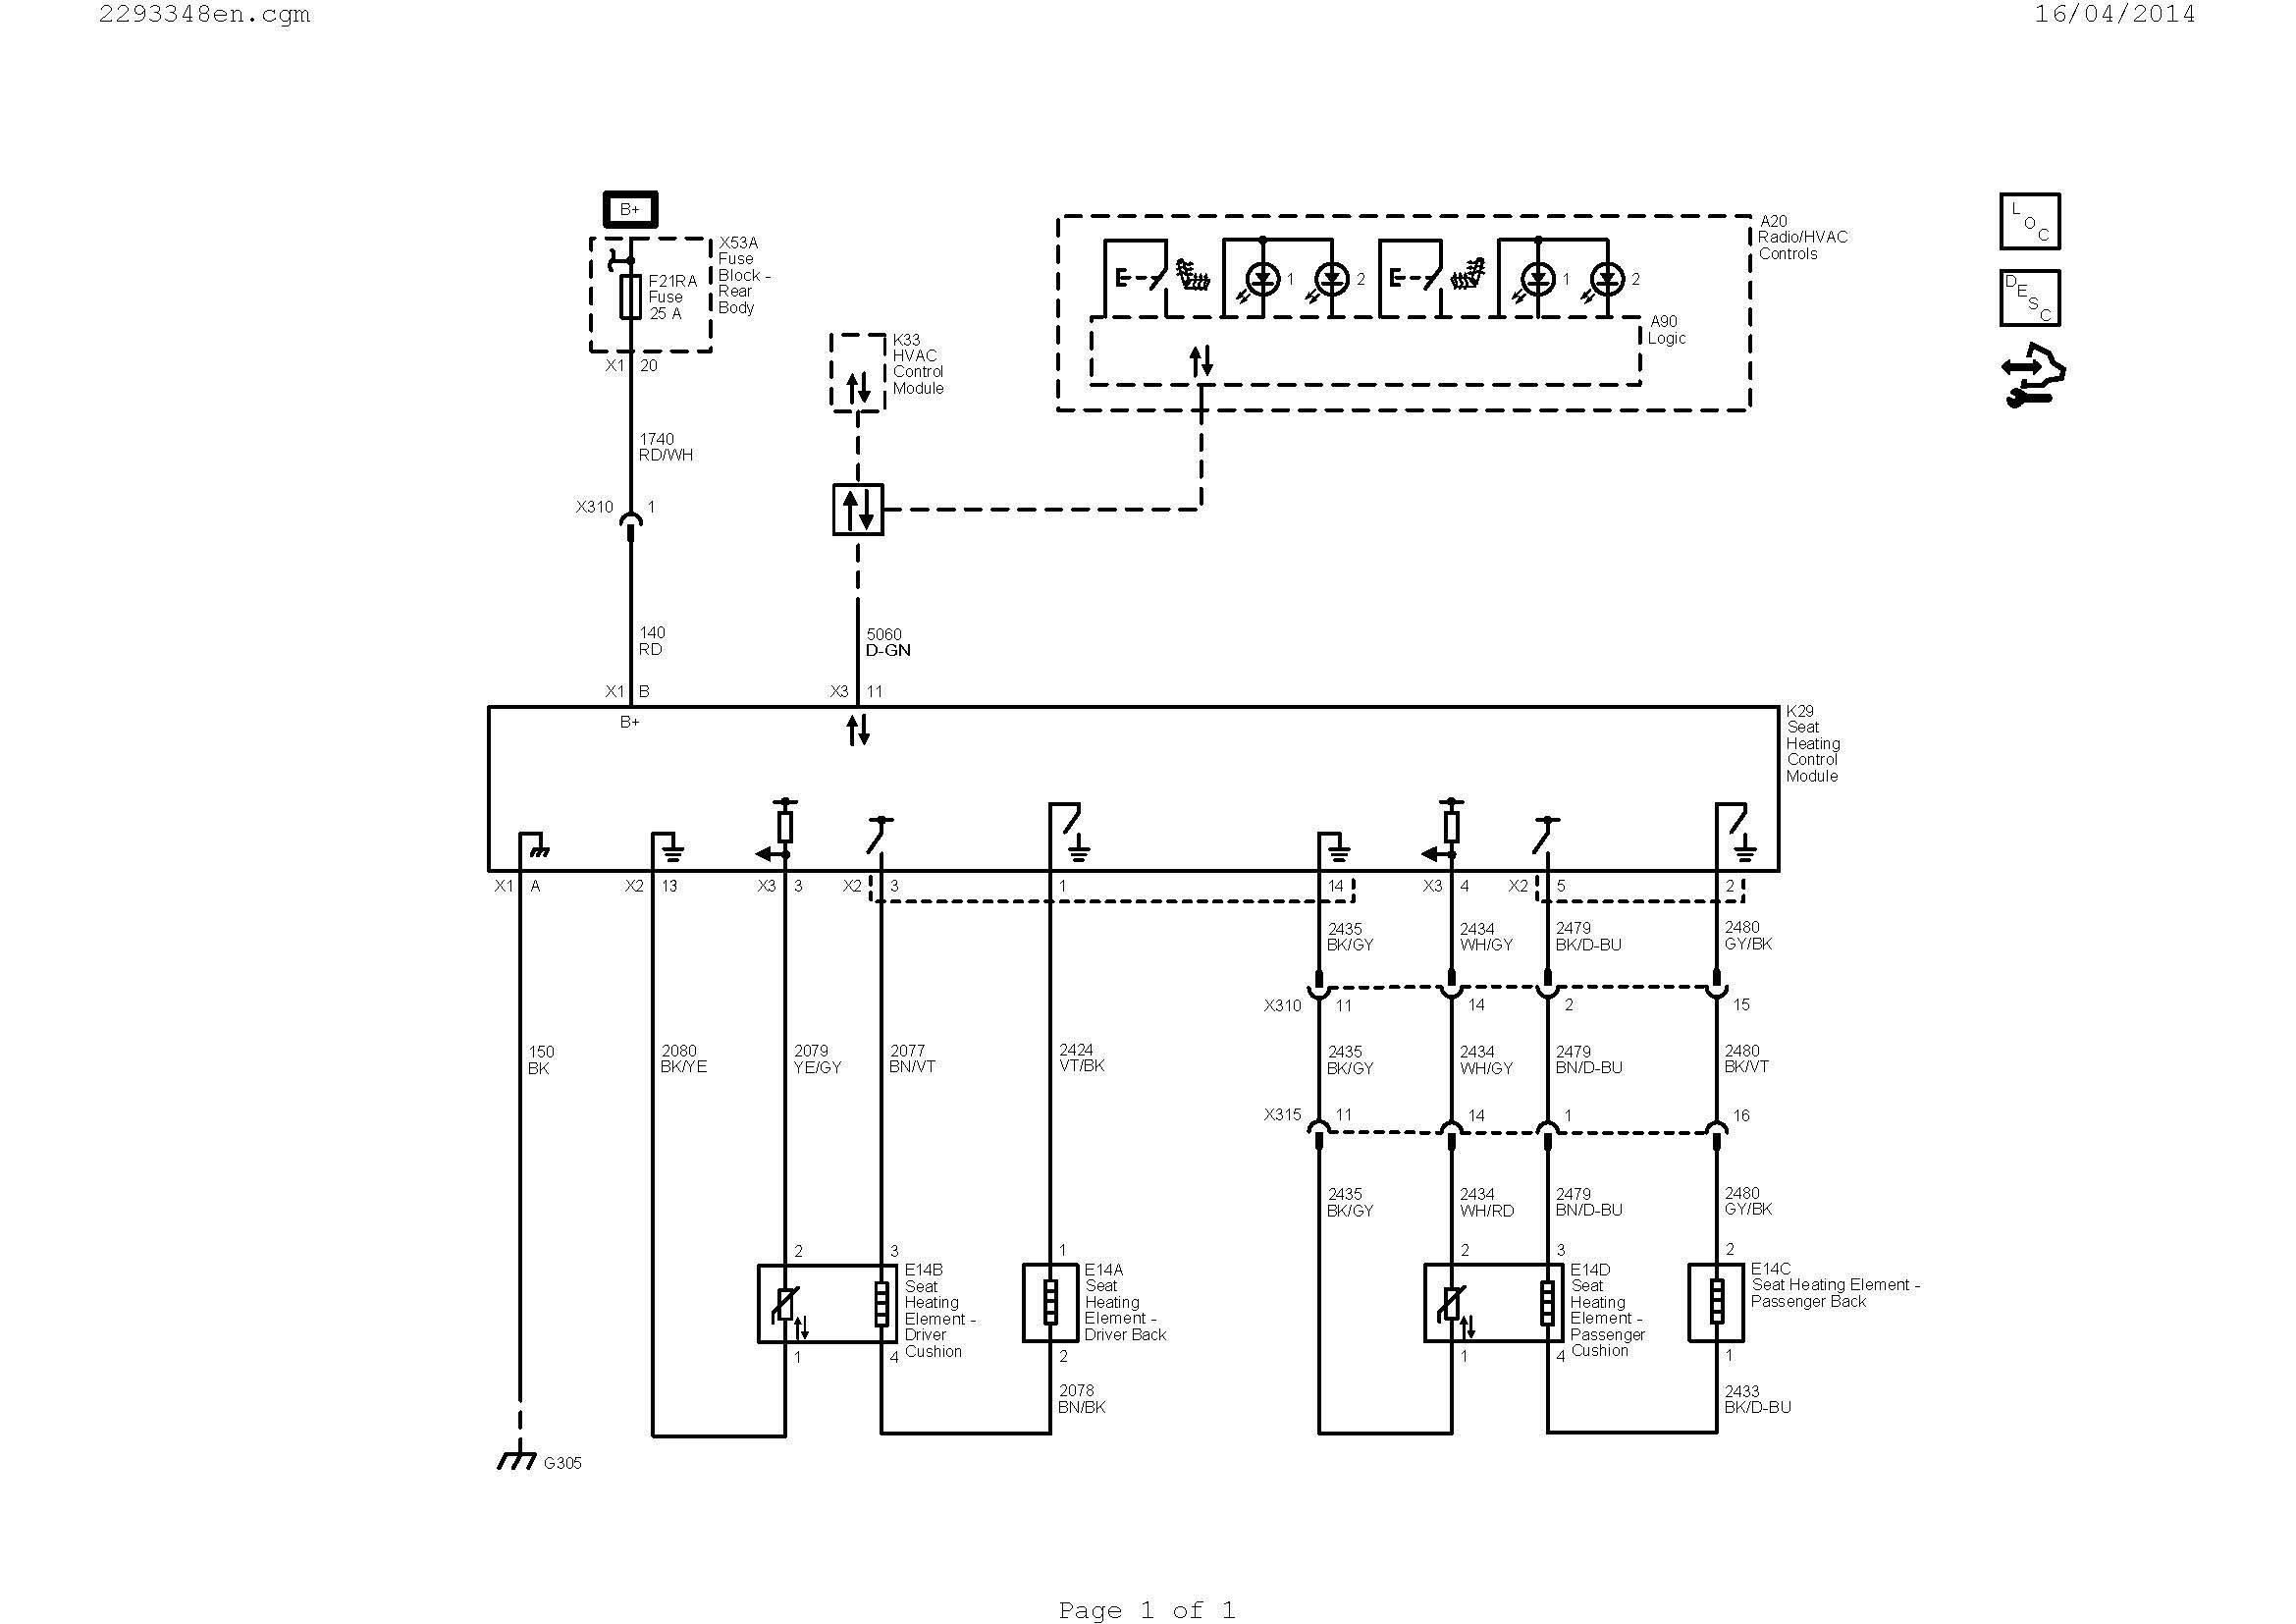 Xsvi 6523 Nav Wiring Diagram - Hvac Wiring Diagram Collection Wiring A Ac thermostat Diagram New Wiring Diagram Ac Valid Hvac Download Wiring Diagram 18a